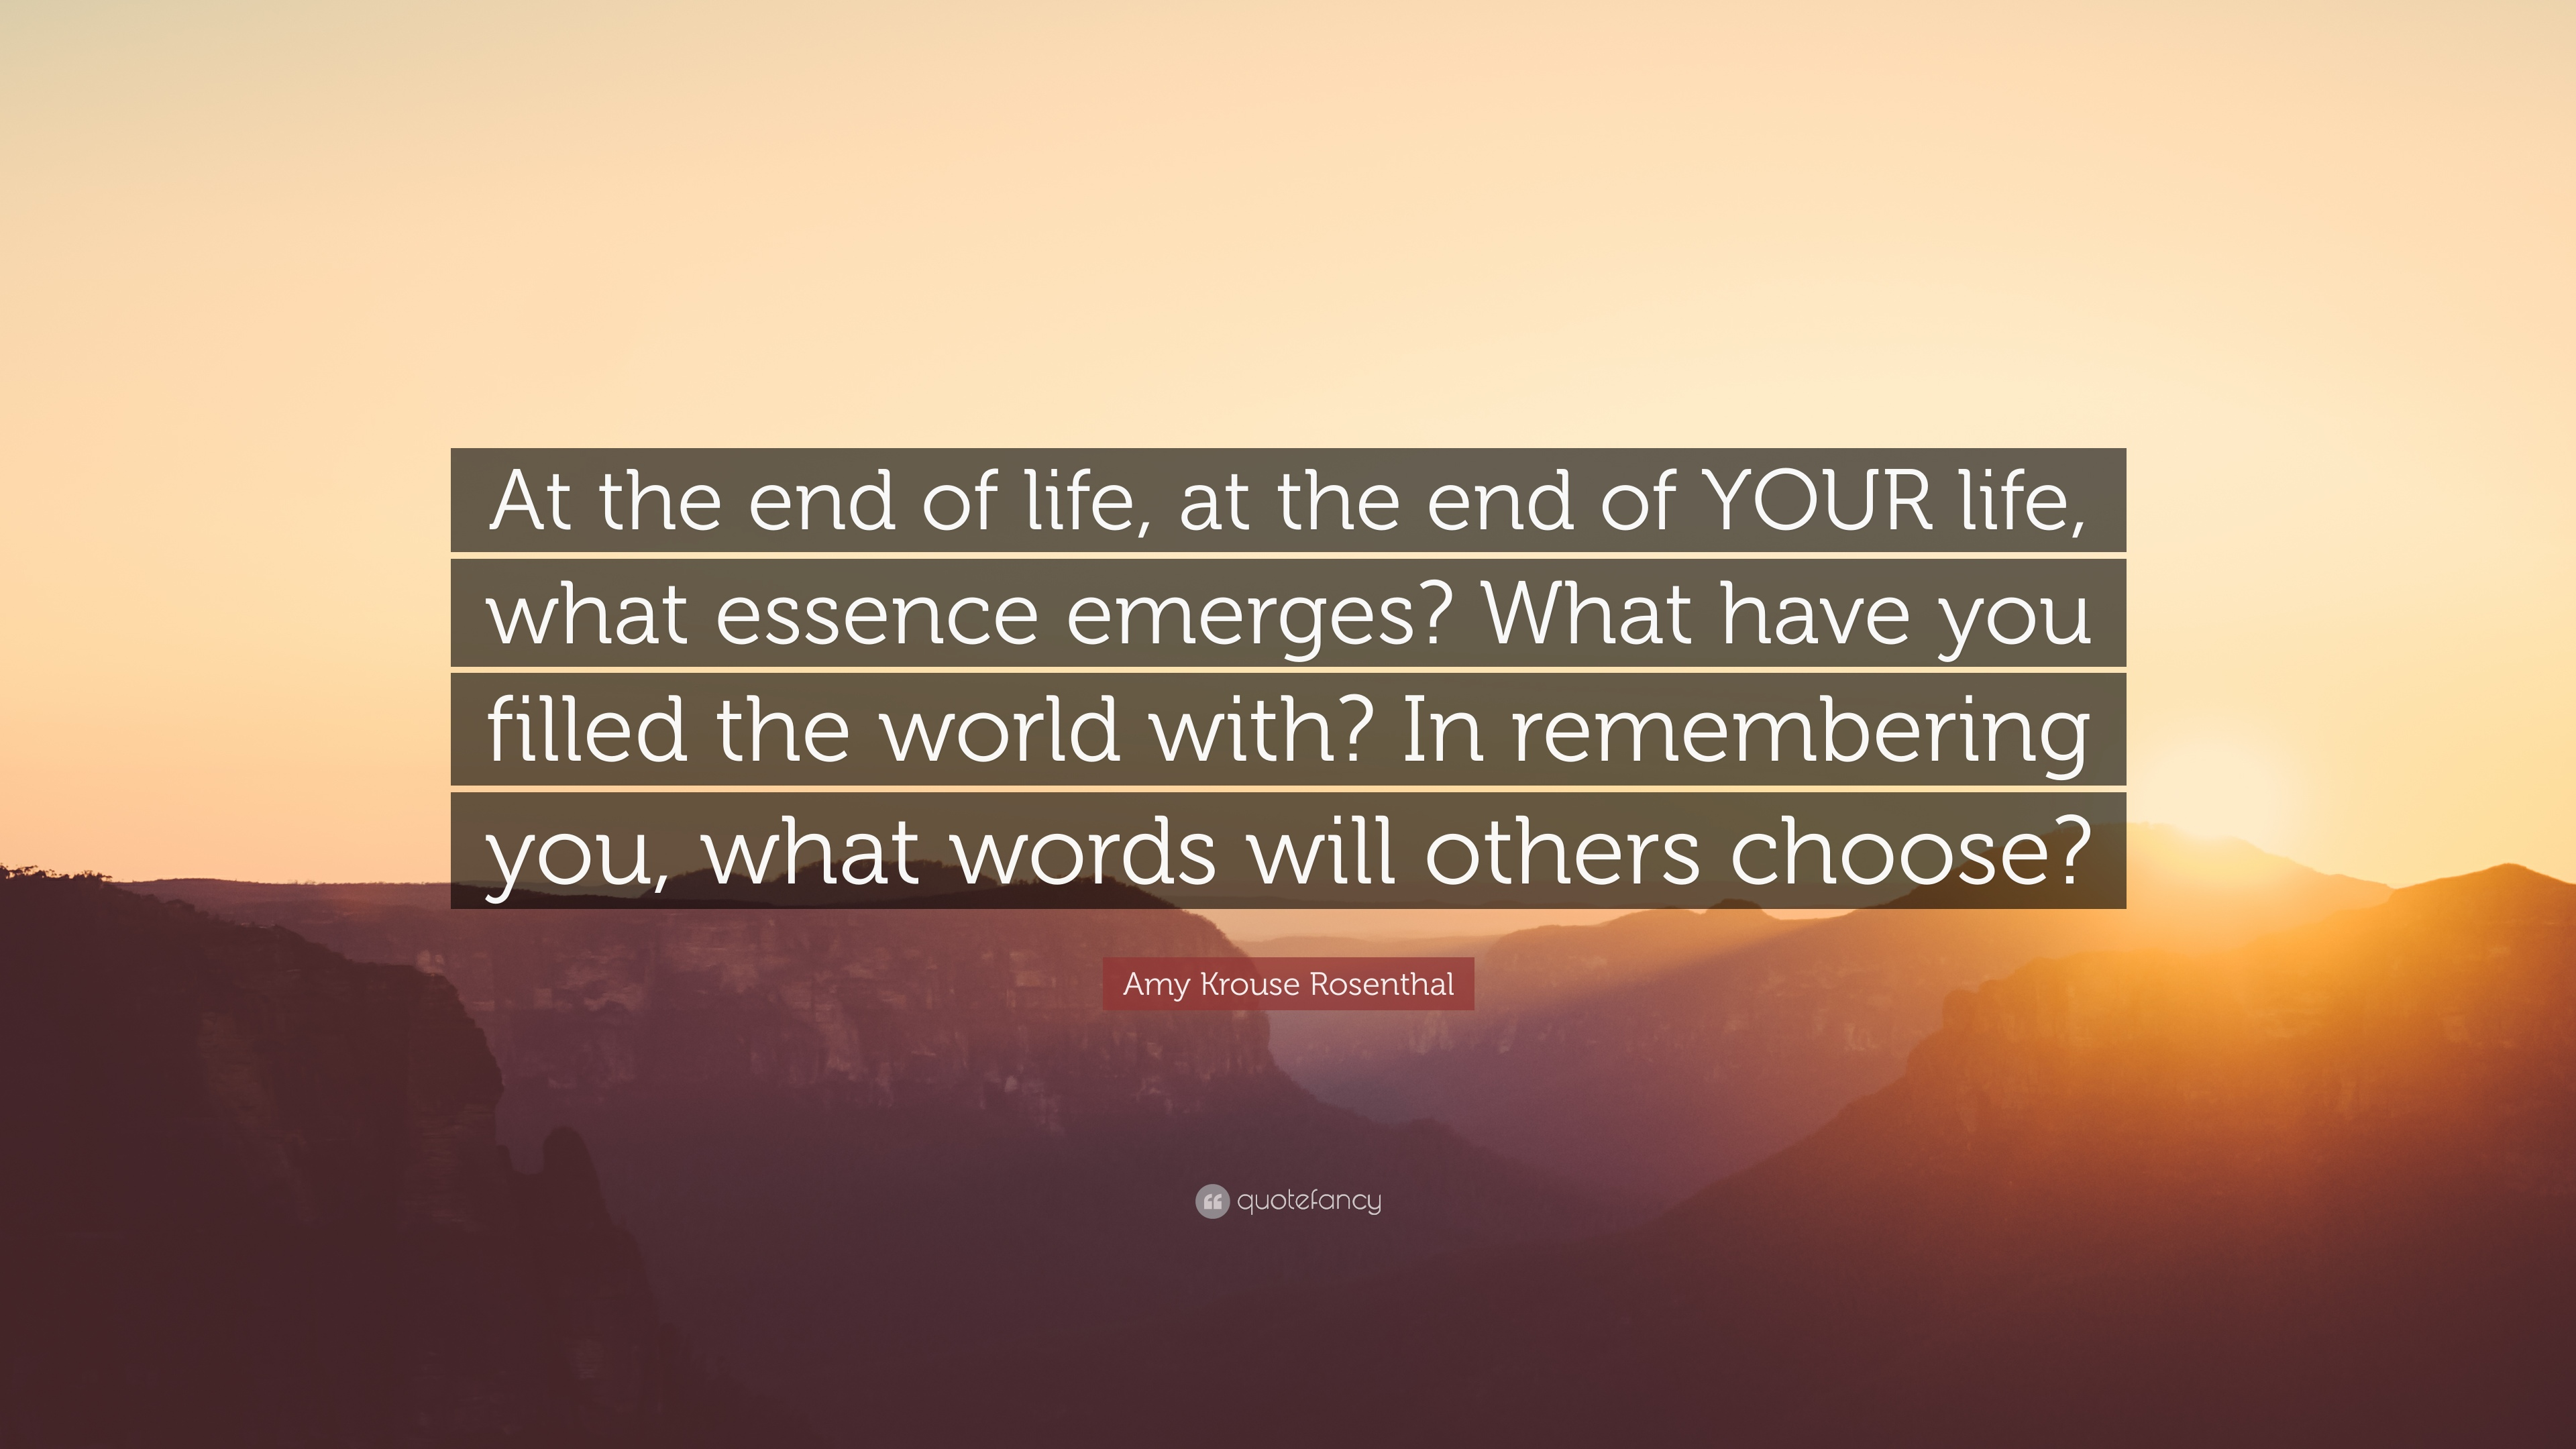 Quotes For End Of Life Amy Krouse Rosenthal Quotes 9 Wallpapers  Quotefancy